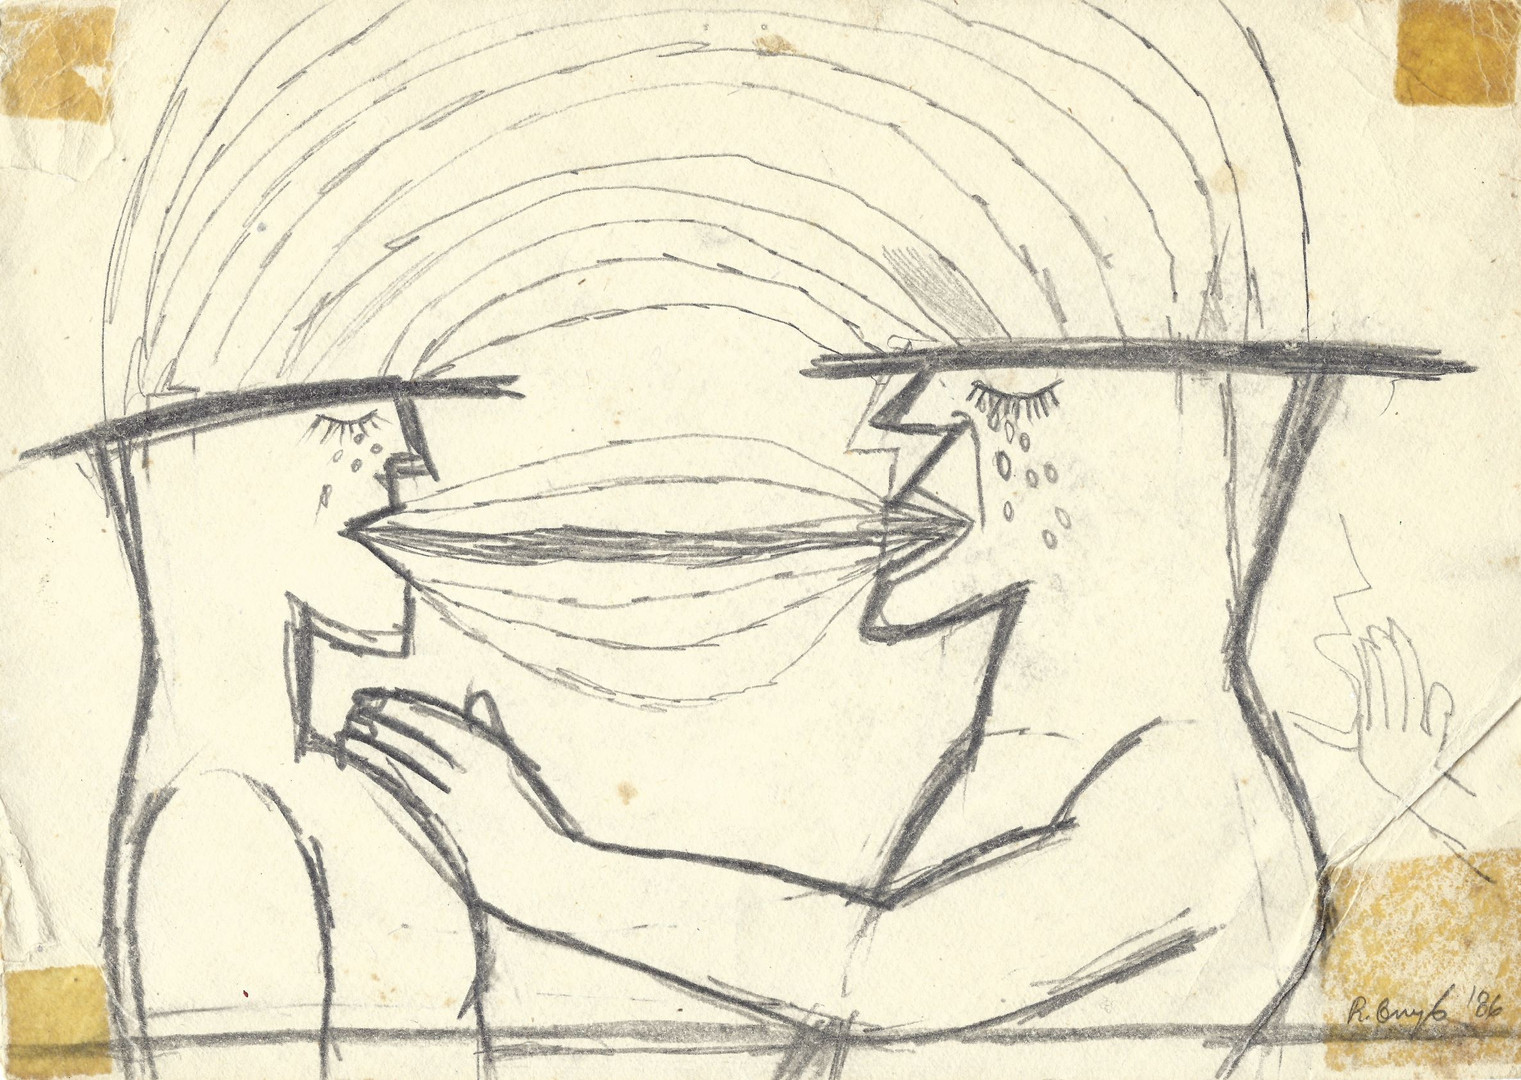 Untitled, 1986, pencil on paper, 21 x 29,7 cm